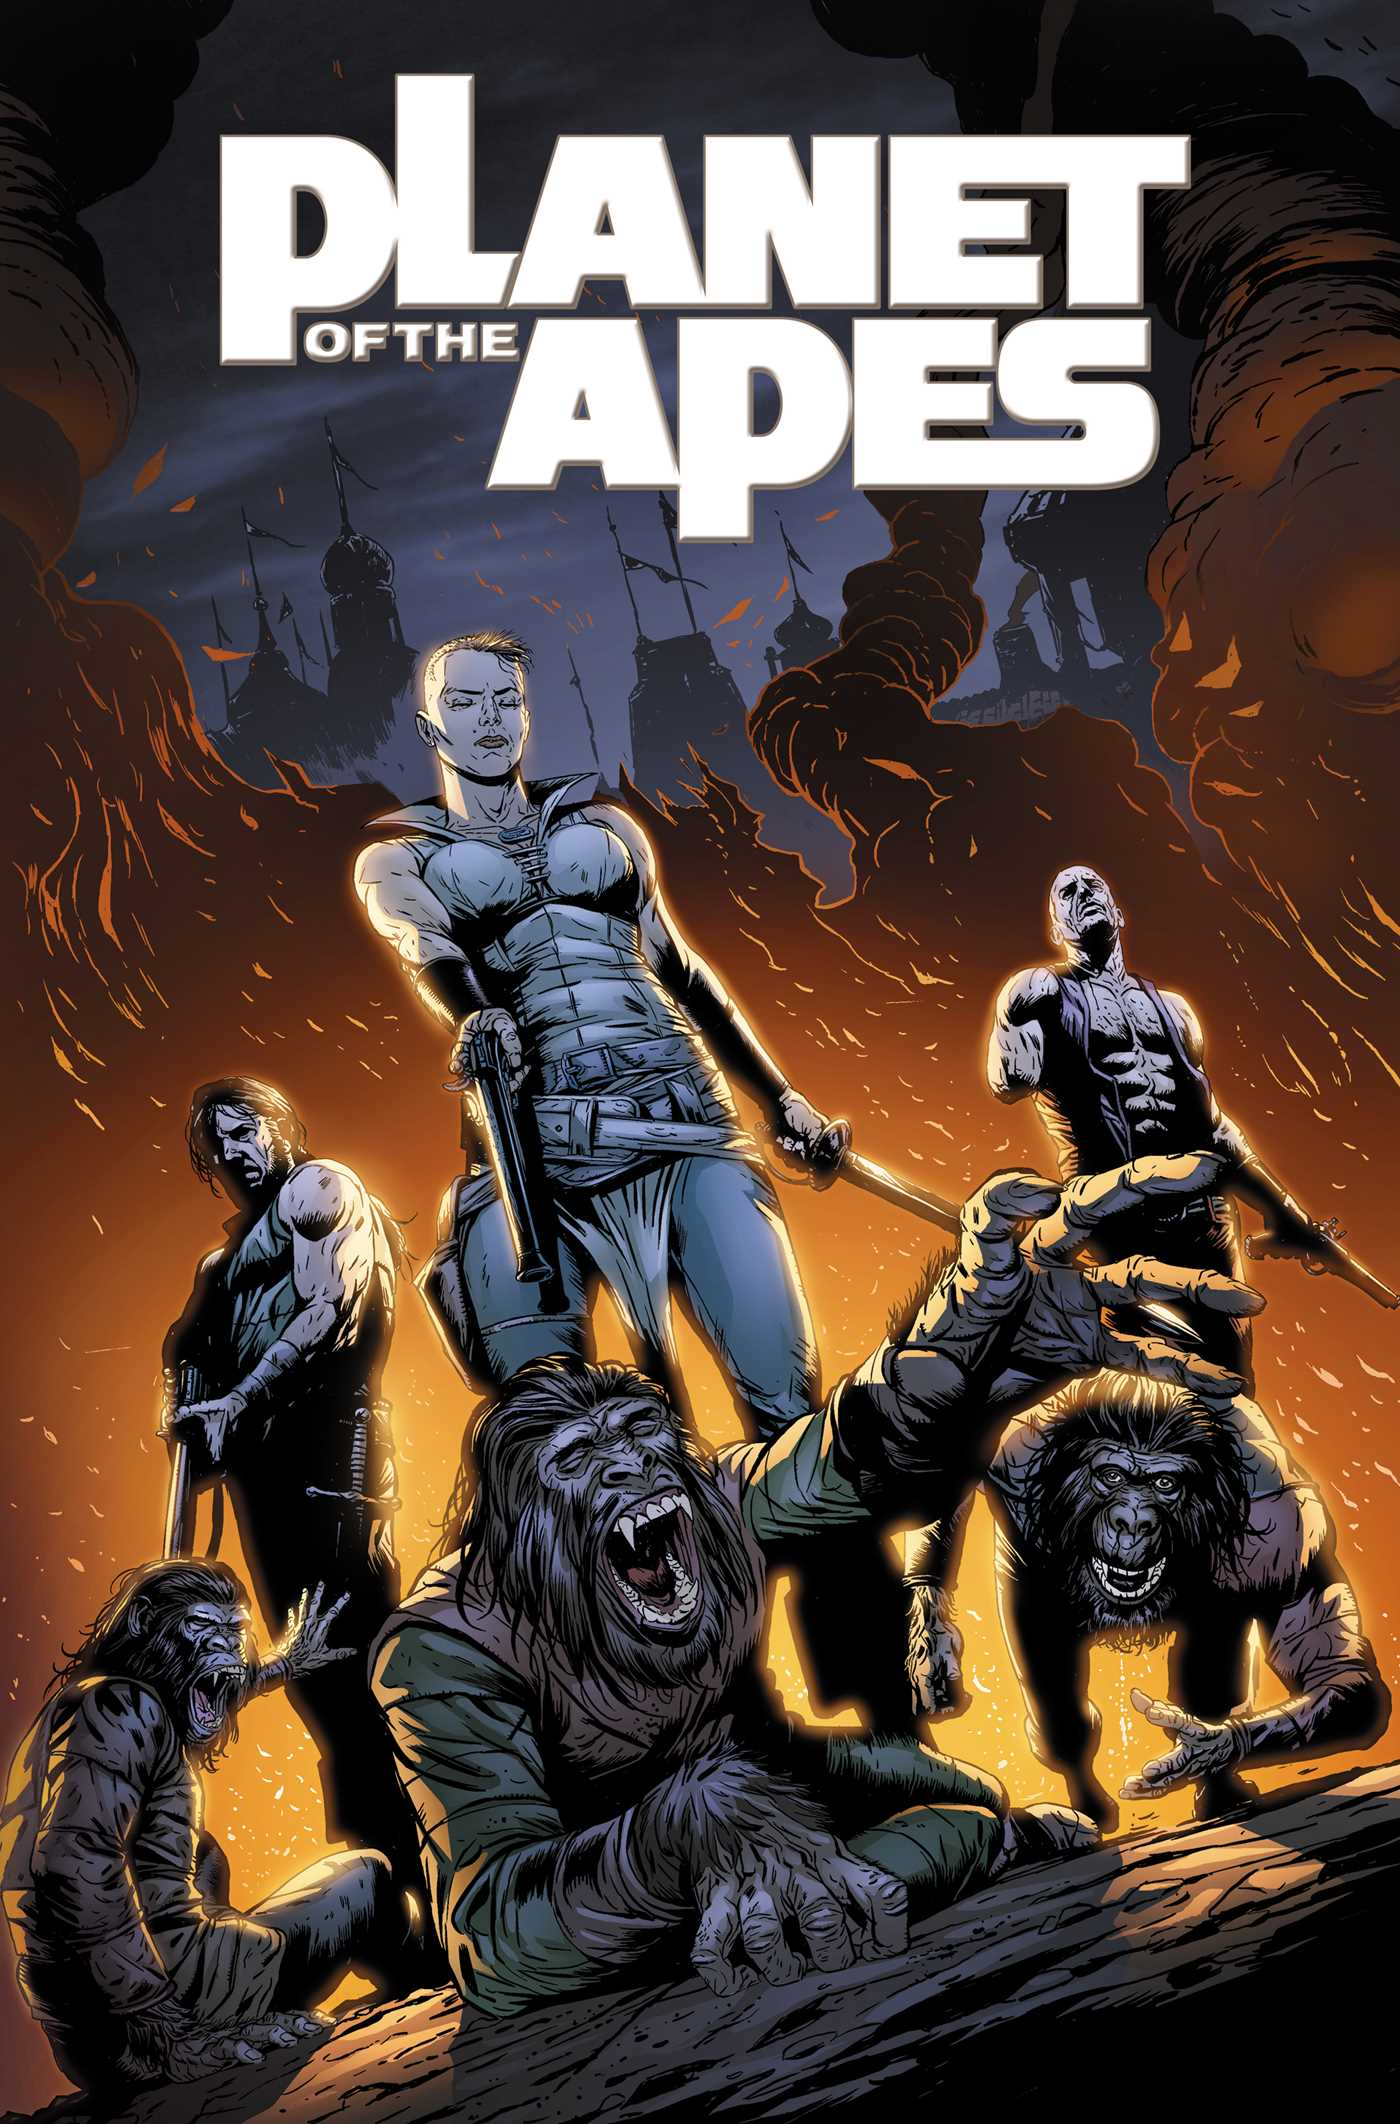 Planet of the apes vol 5 9781608863709 hr